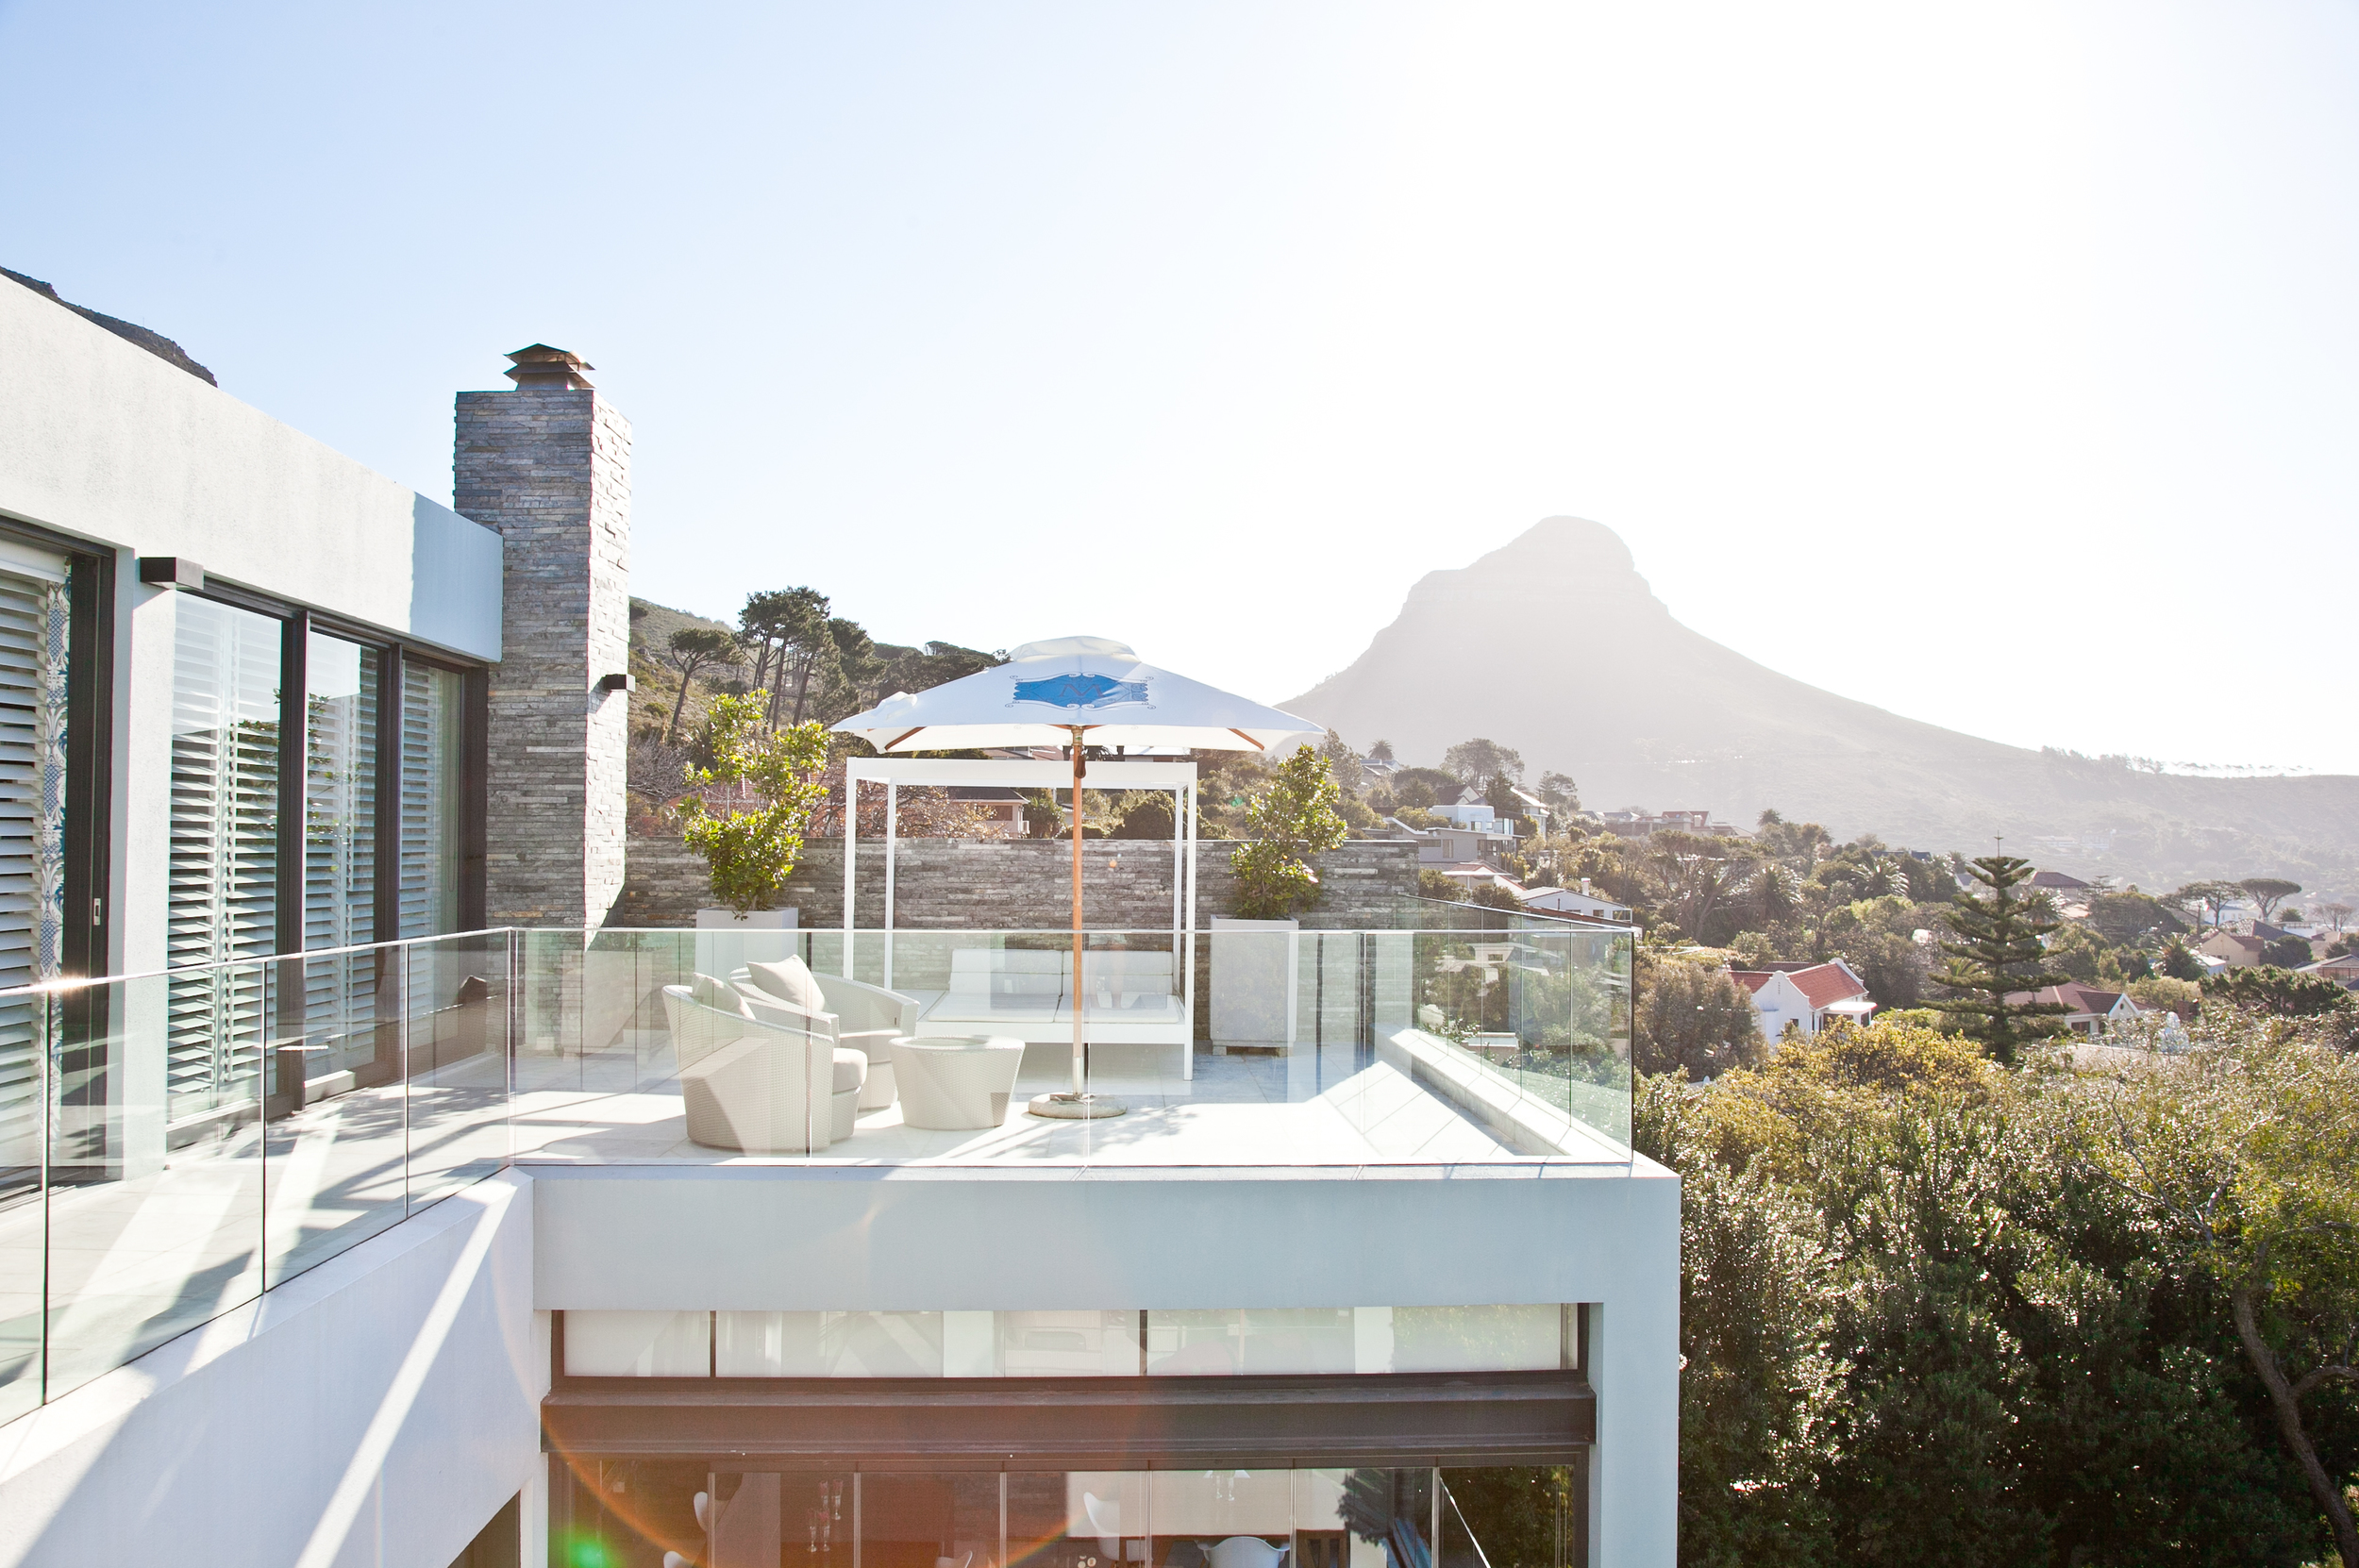 IMG_4596-cape-town-south-africa-mannabay-hotel.jpg